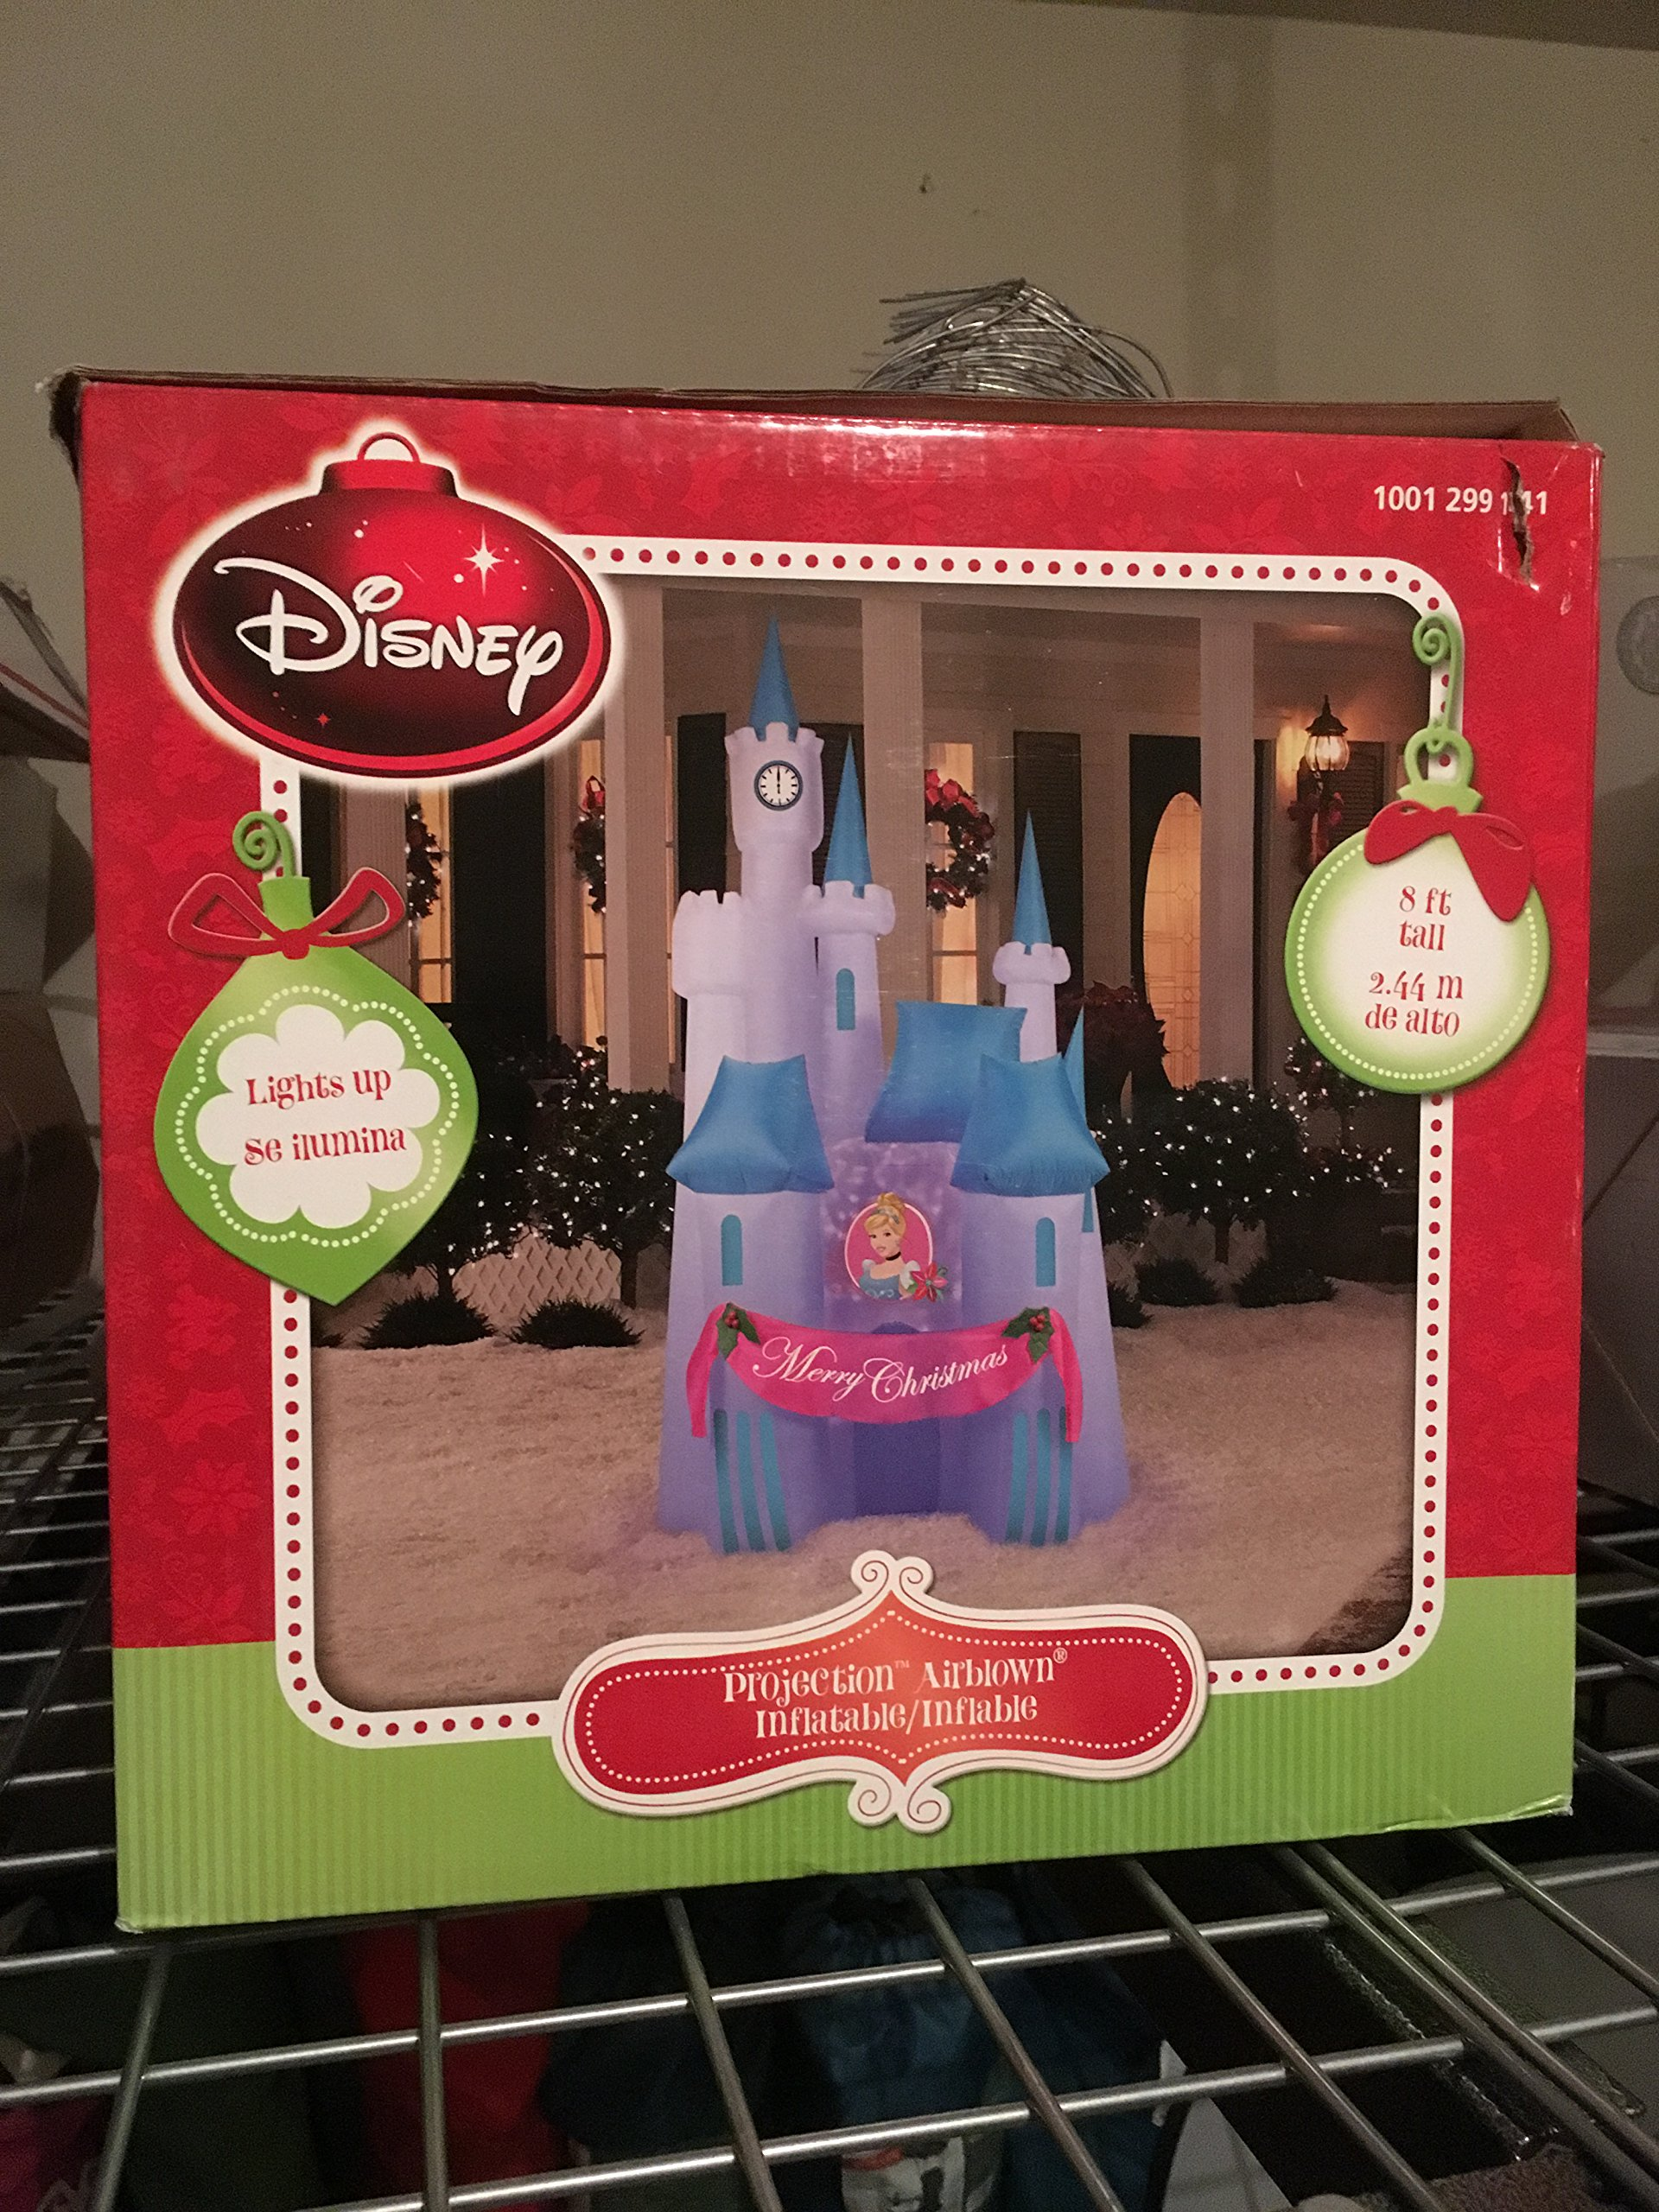 CHRISTMAS DECORATION YARD LAWN GARDEN PROJECTION KALEIDOSCOPE INFLATATABLE AIRBLOWN CINDERELLA CASTLE 8' TALL